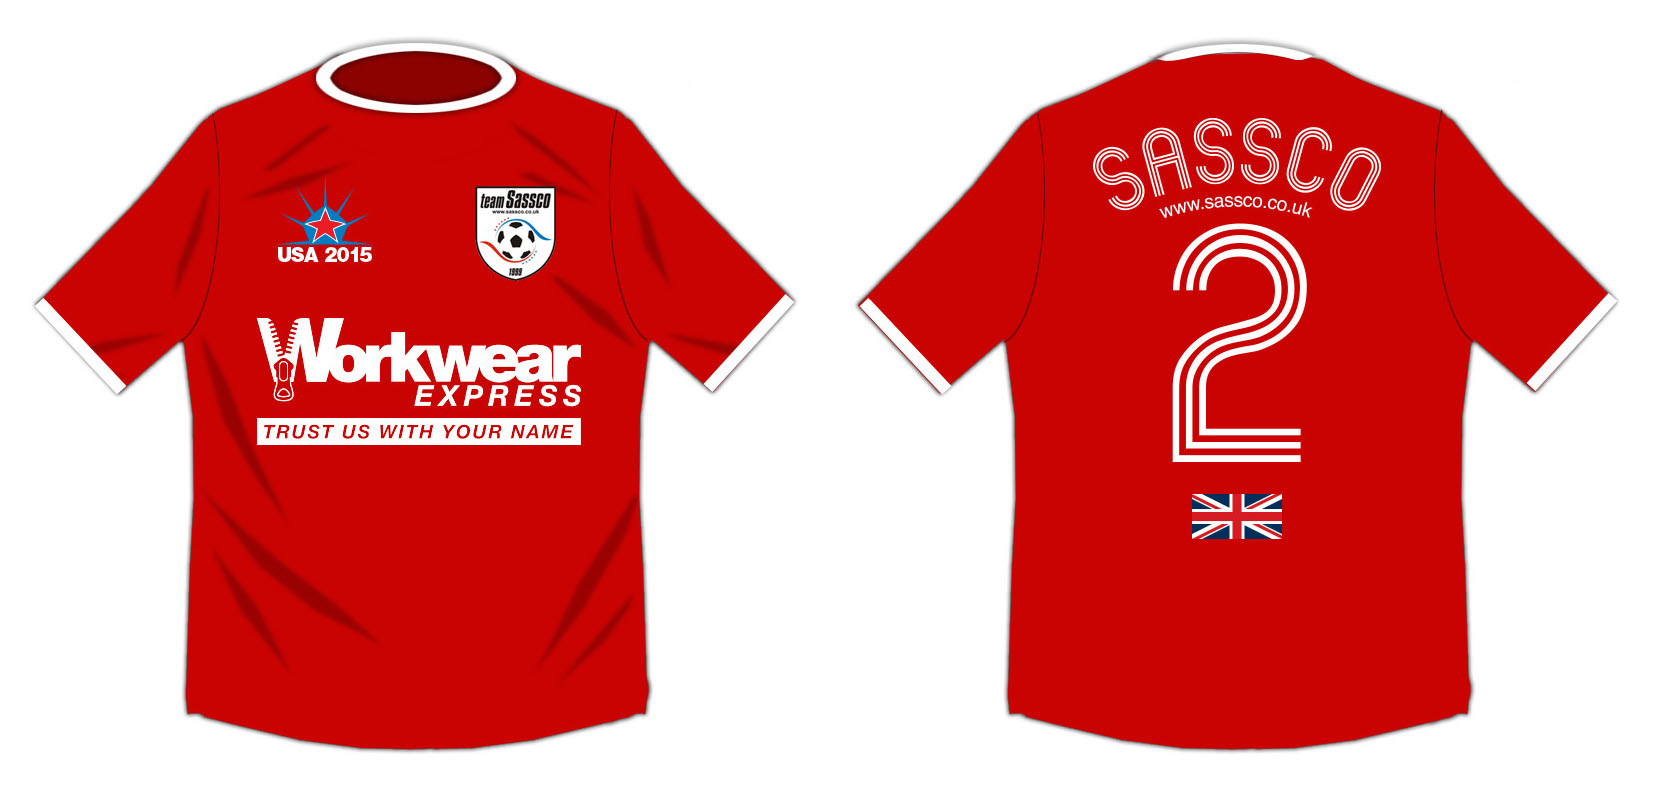 USA Tour soccer shirt for New York City